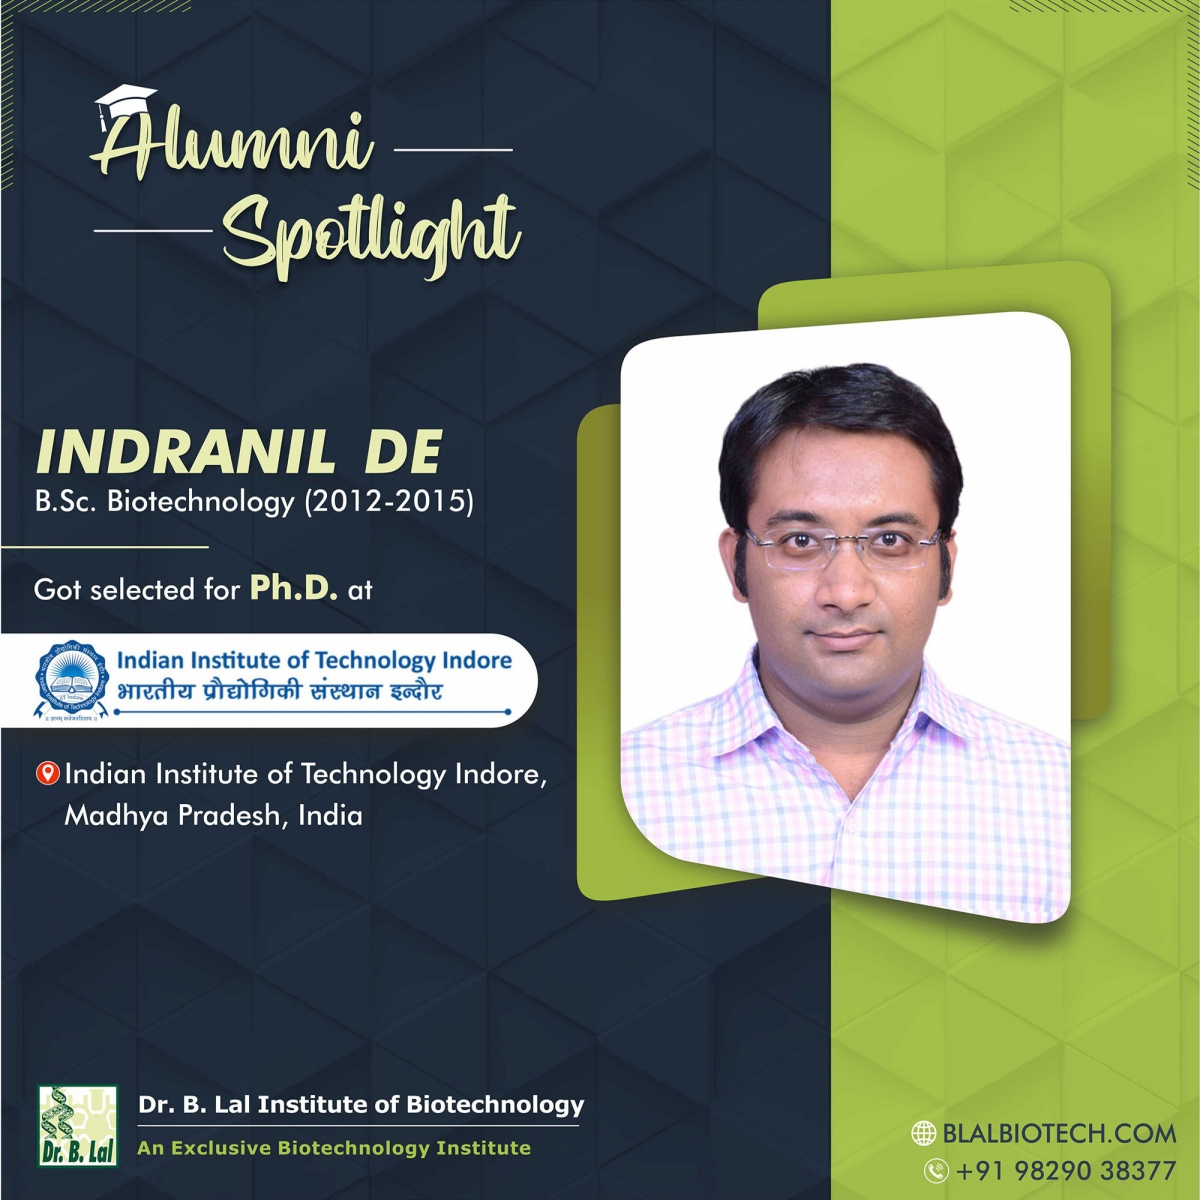 Mr. Indranil De | Selected for Ph.D. at Indian Institute of Technology Indore